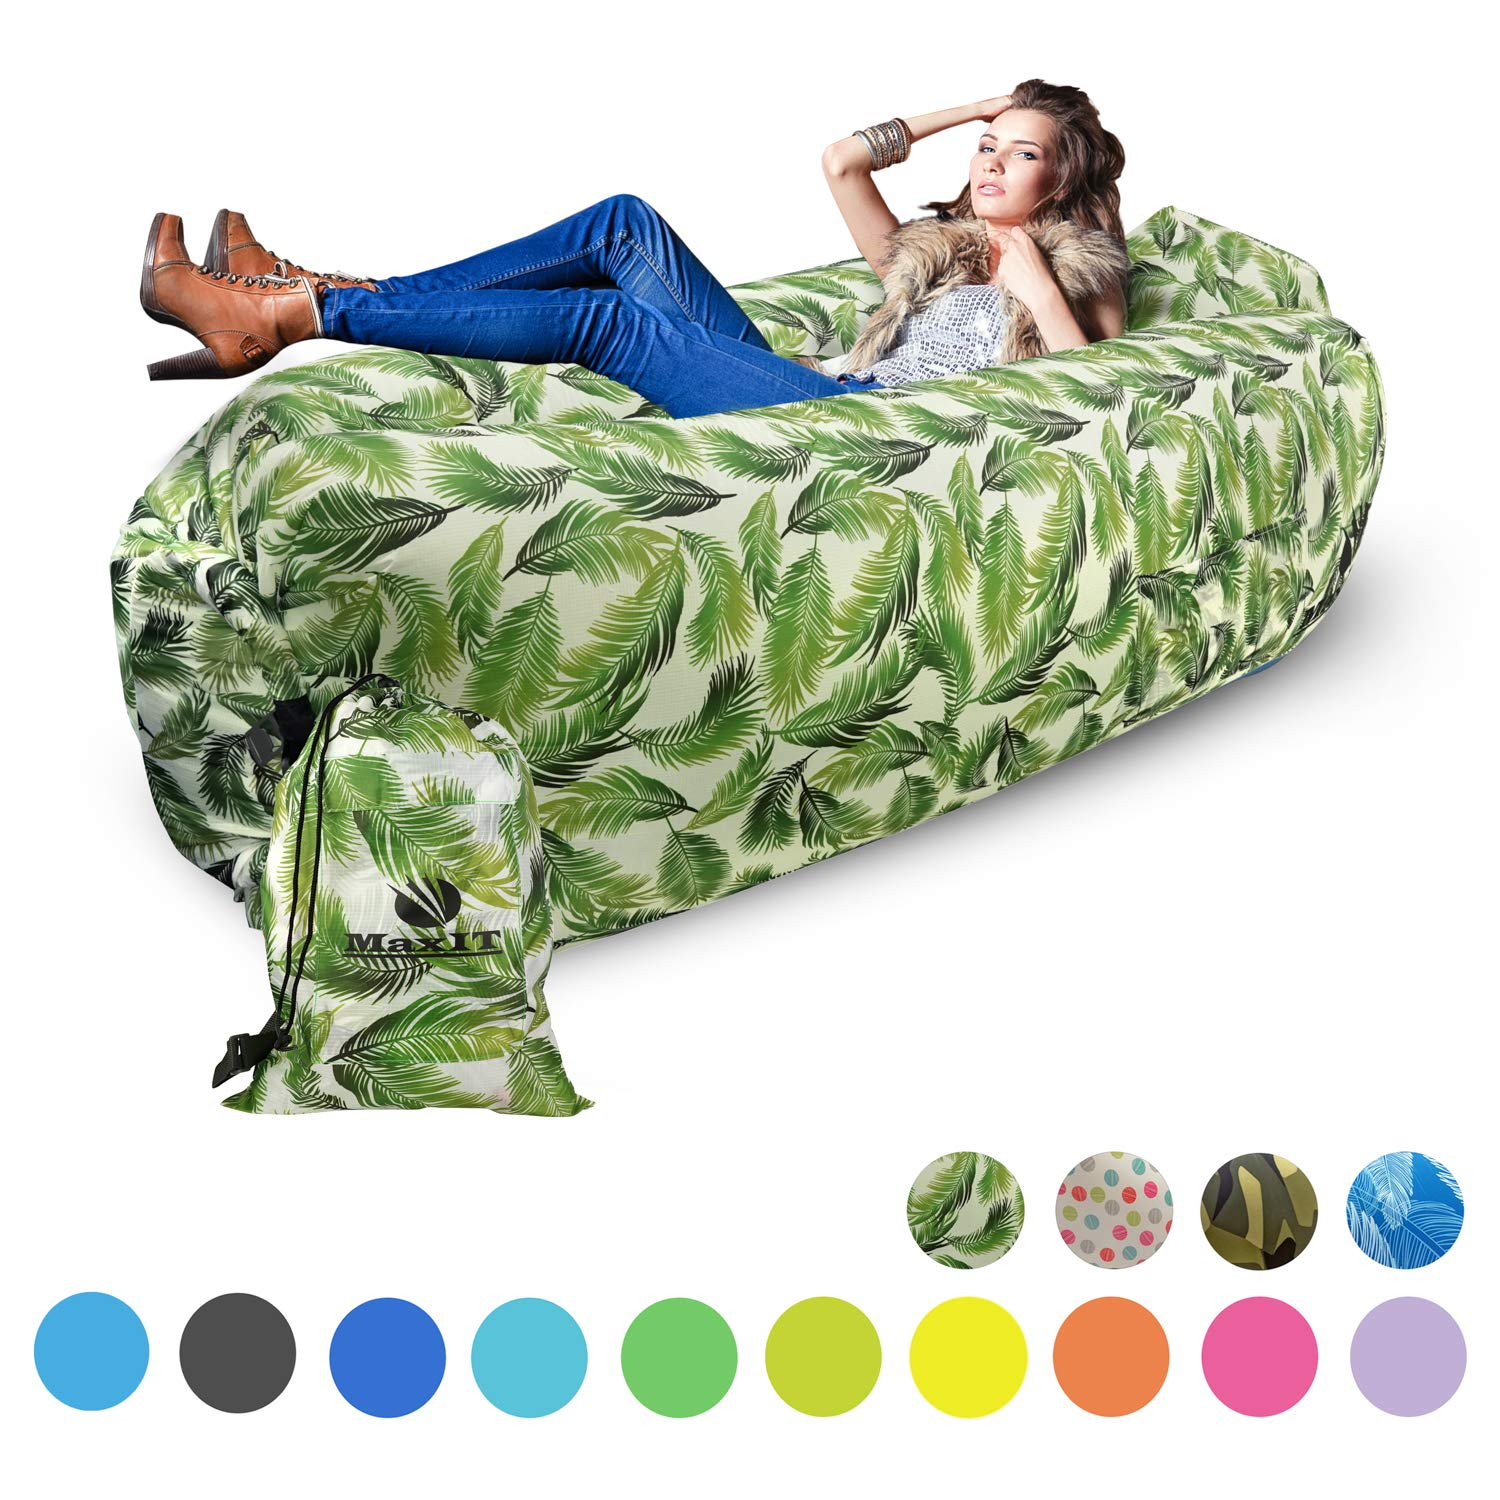 MaxIT Inflatable Hammock Sofa | Pool Floating Air Lounger Bed for Adults or Kids, Perfect for Tanning or Relaxing in The Sun | Easy to Inflate and Puncture Resistant (Green Feather) by MAXIT